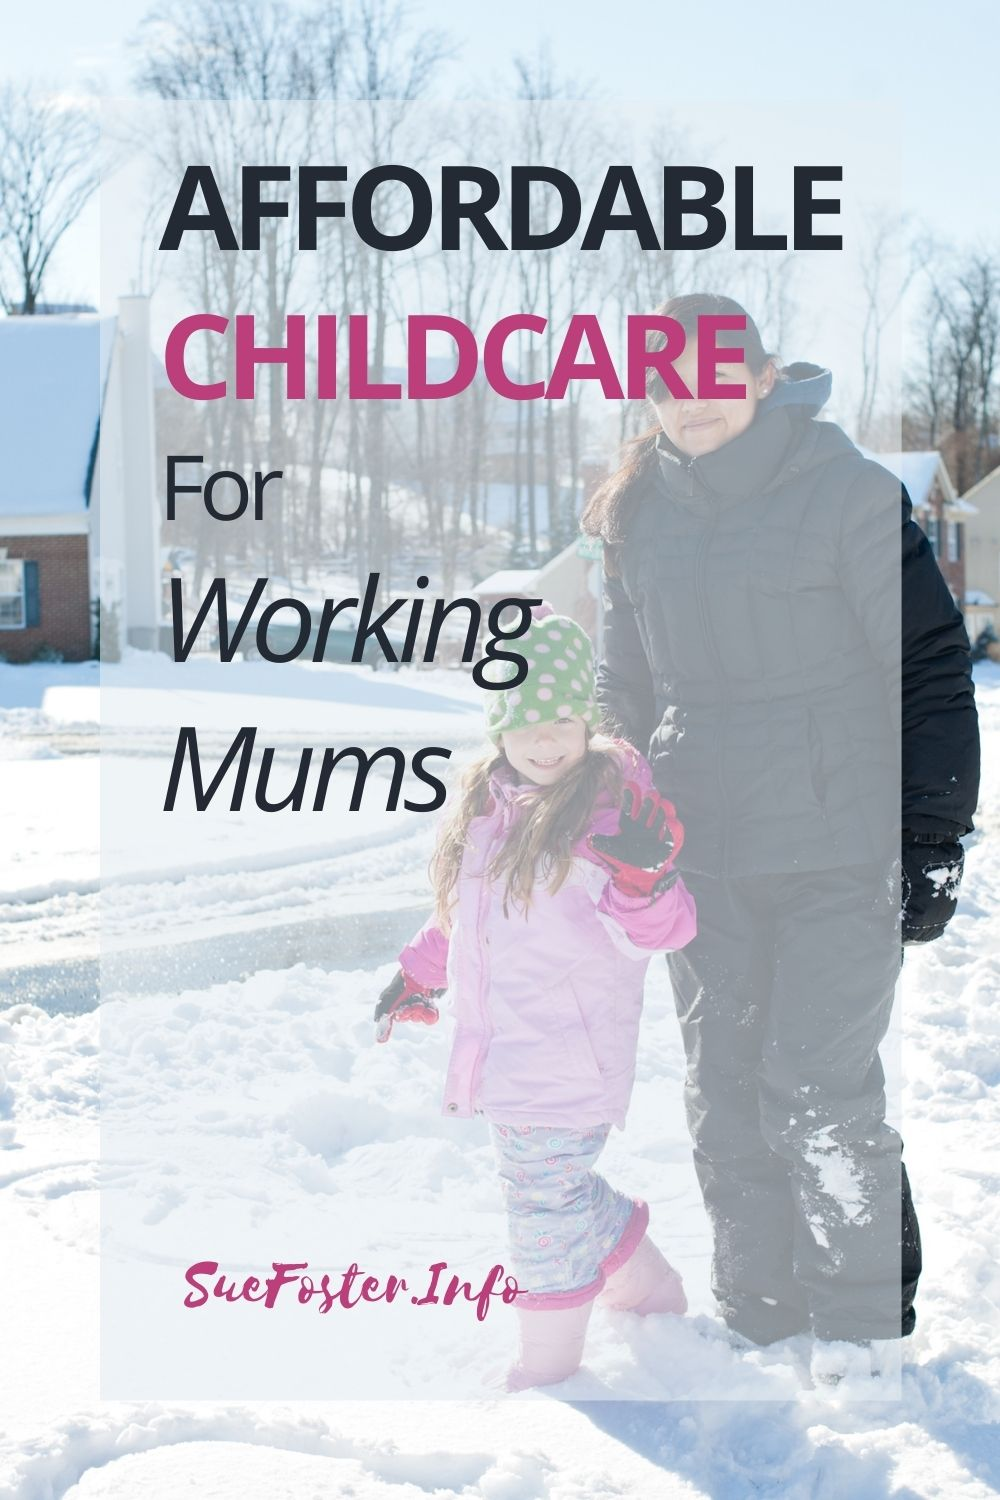 Affordable Childcare For Working Mums